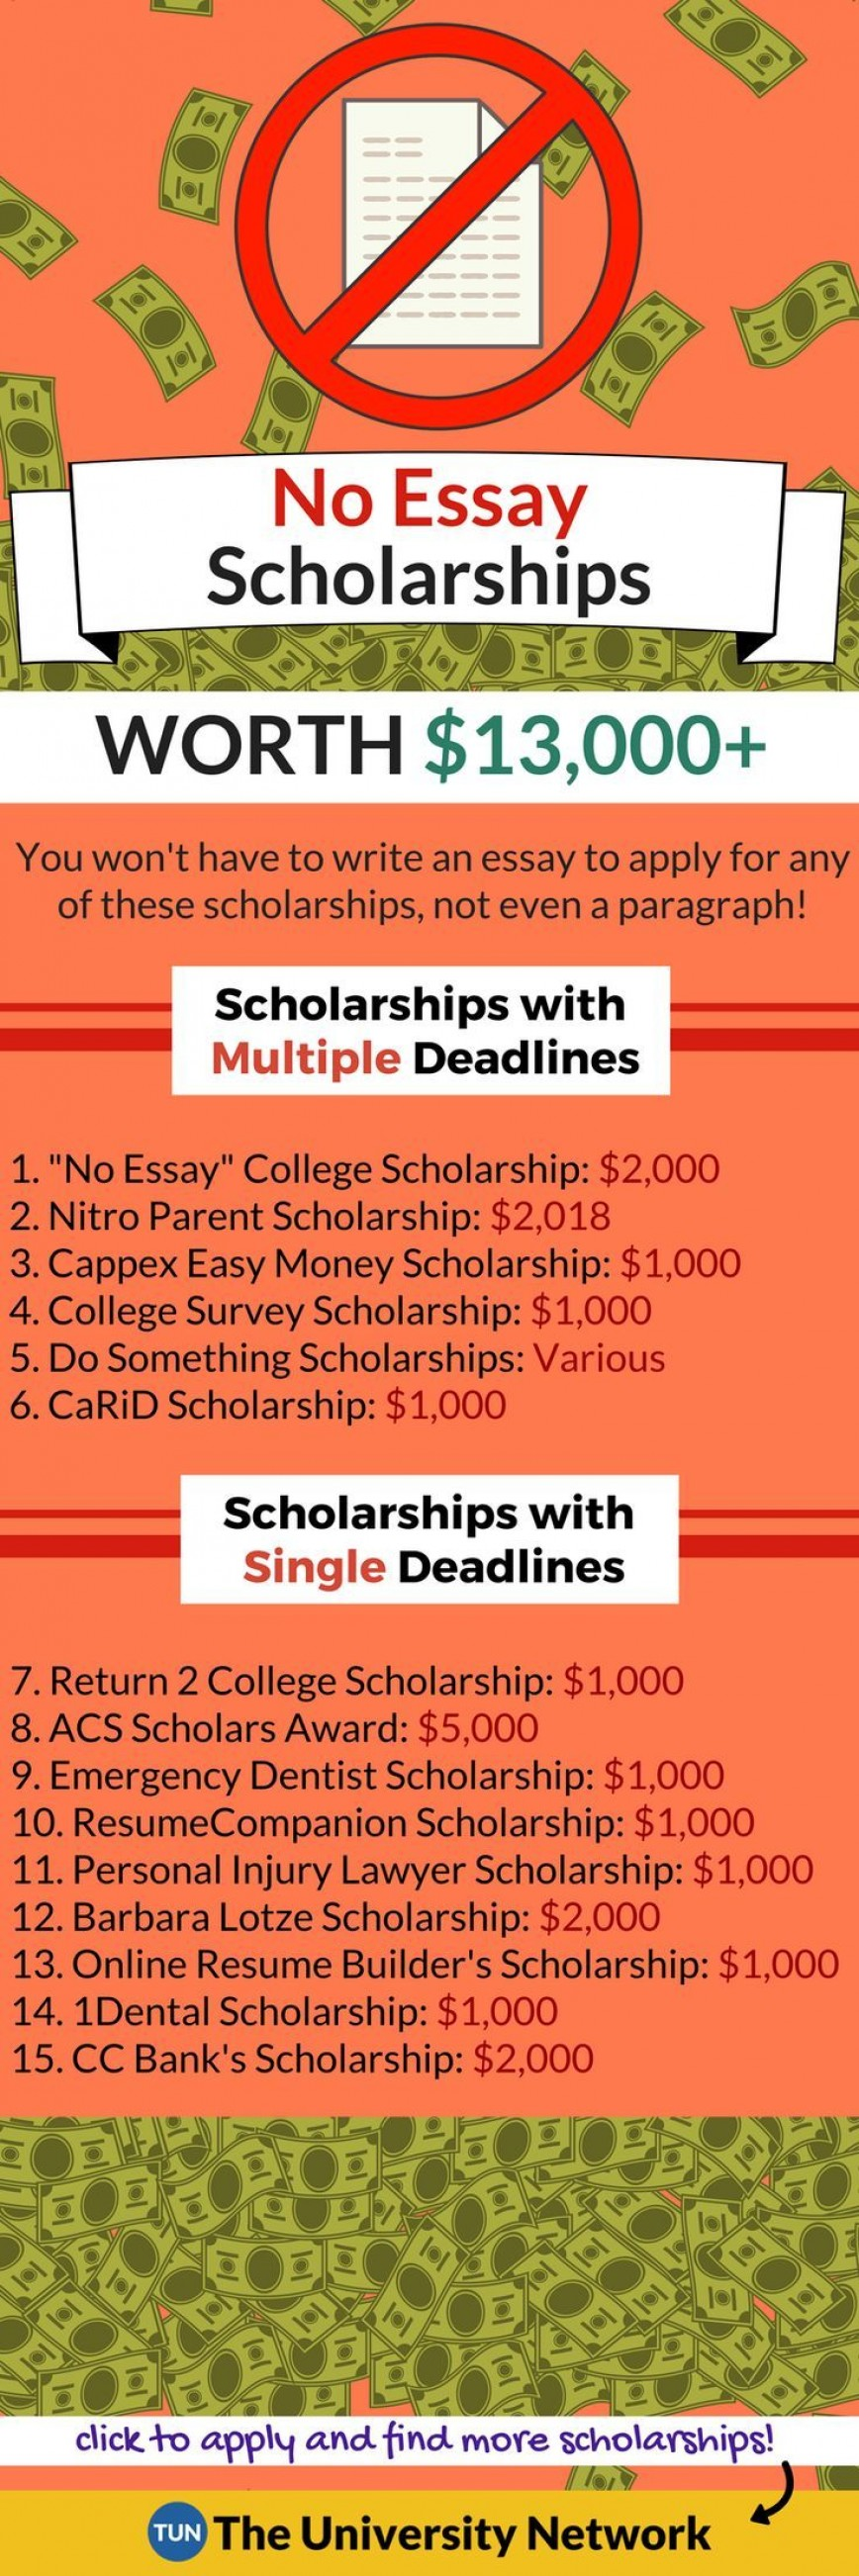 013 Essay Example No Exceptional Scholarships For Undergraduates High School Seniors College Students 2019 868